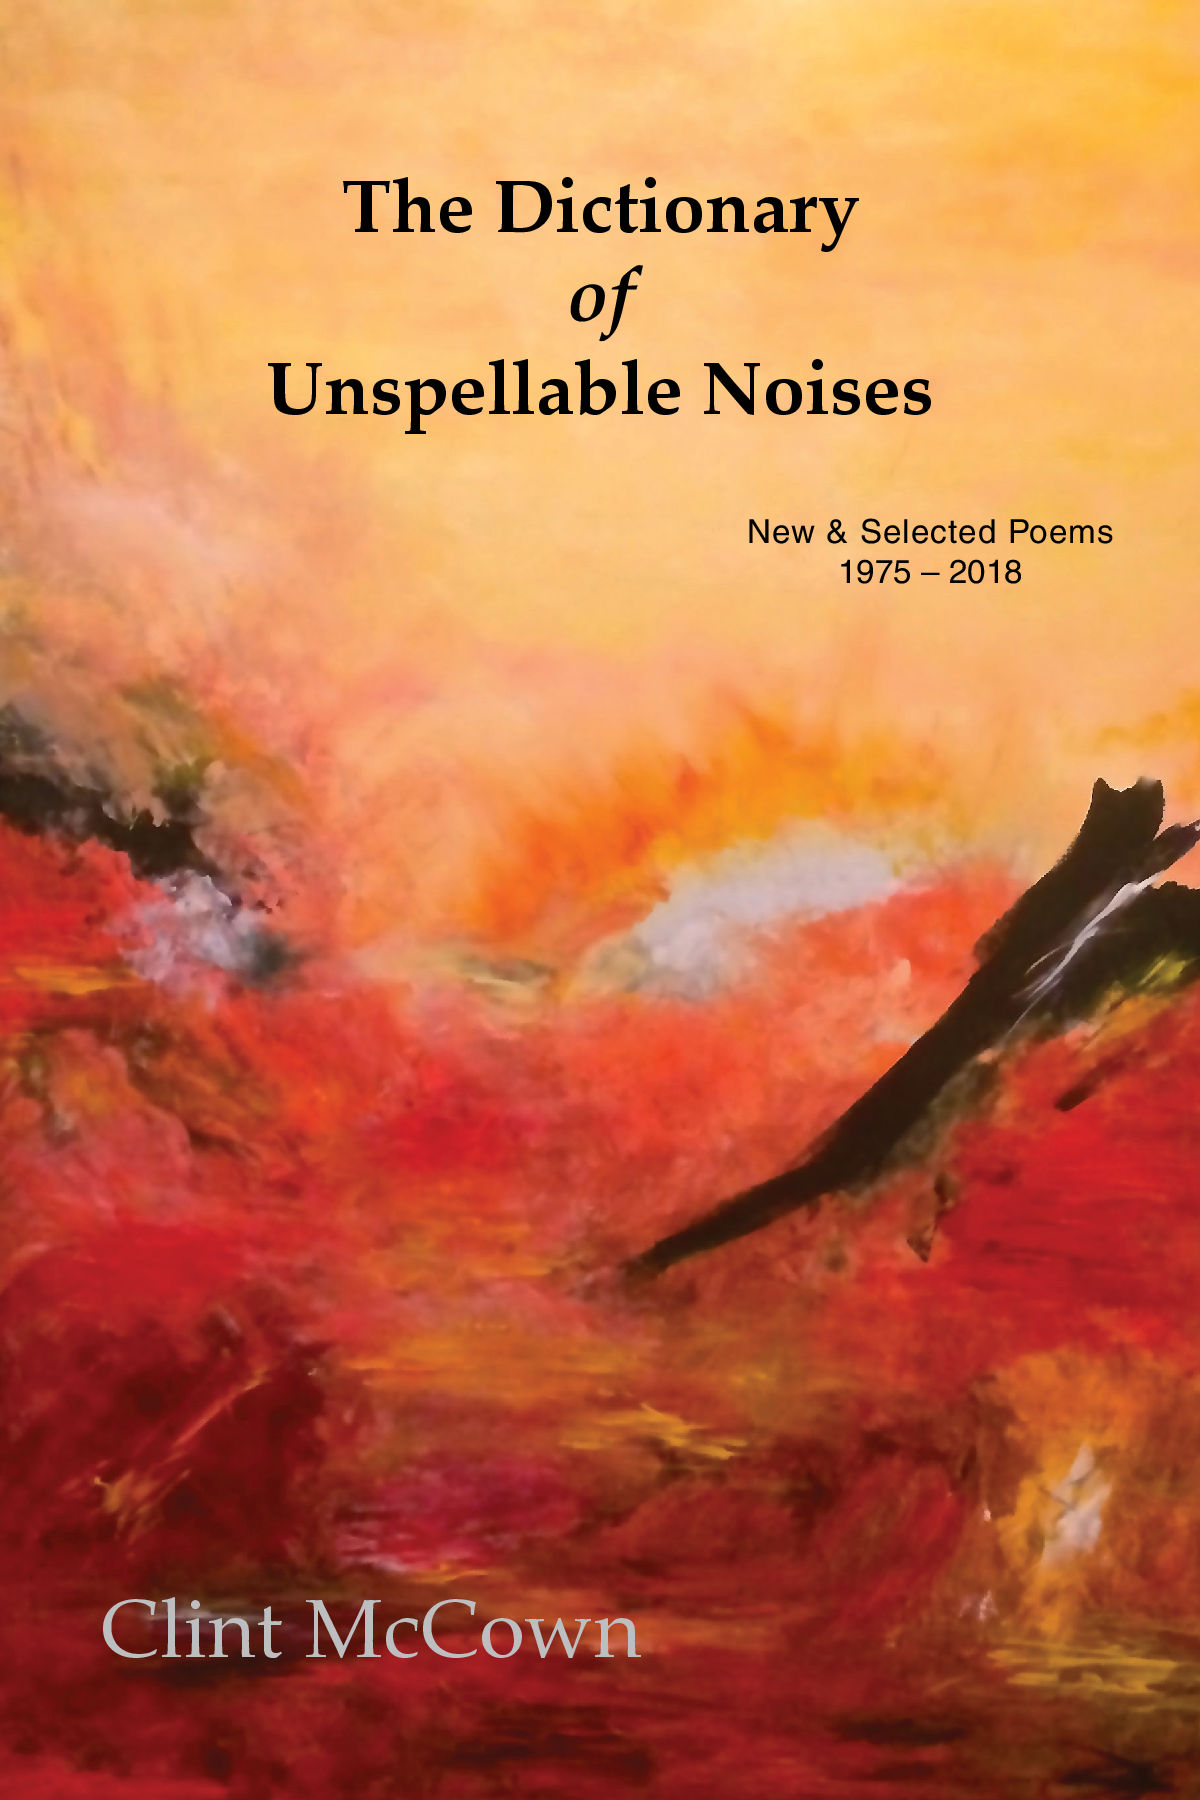 The Dictionary of Unspellable Noises.jpg